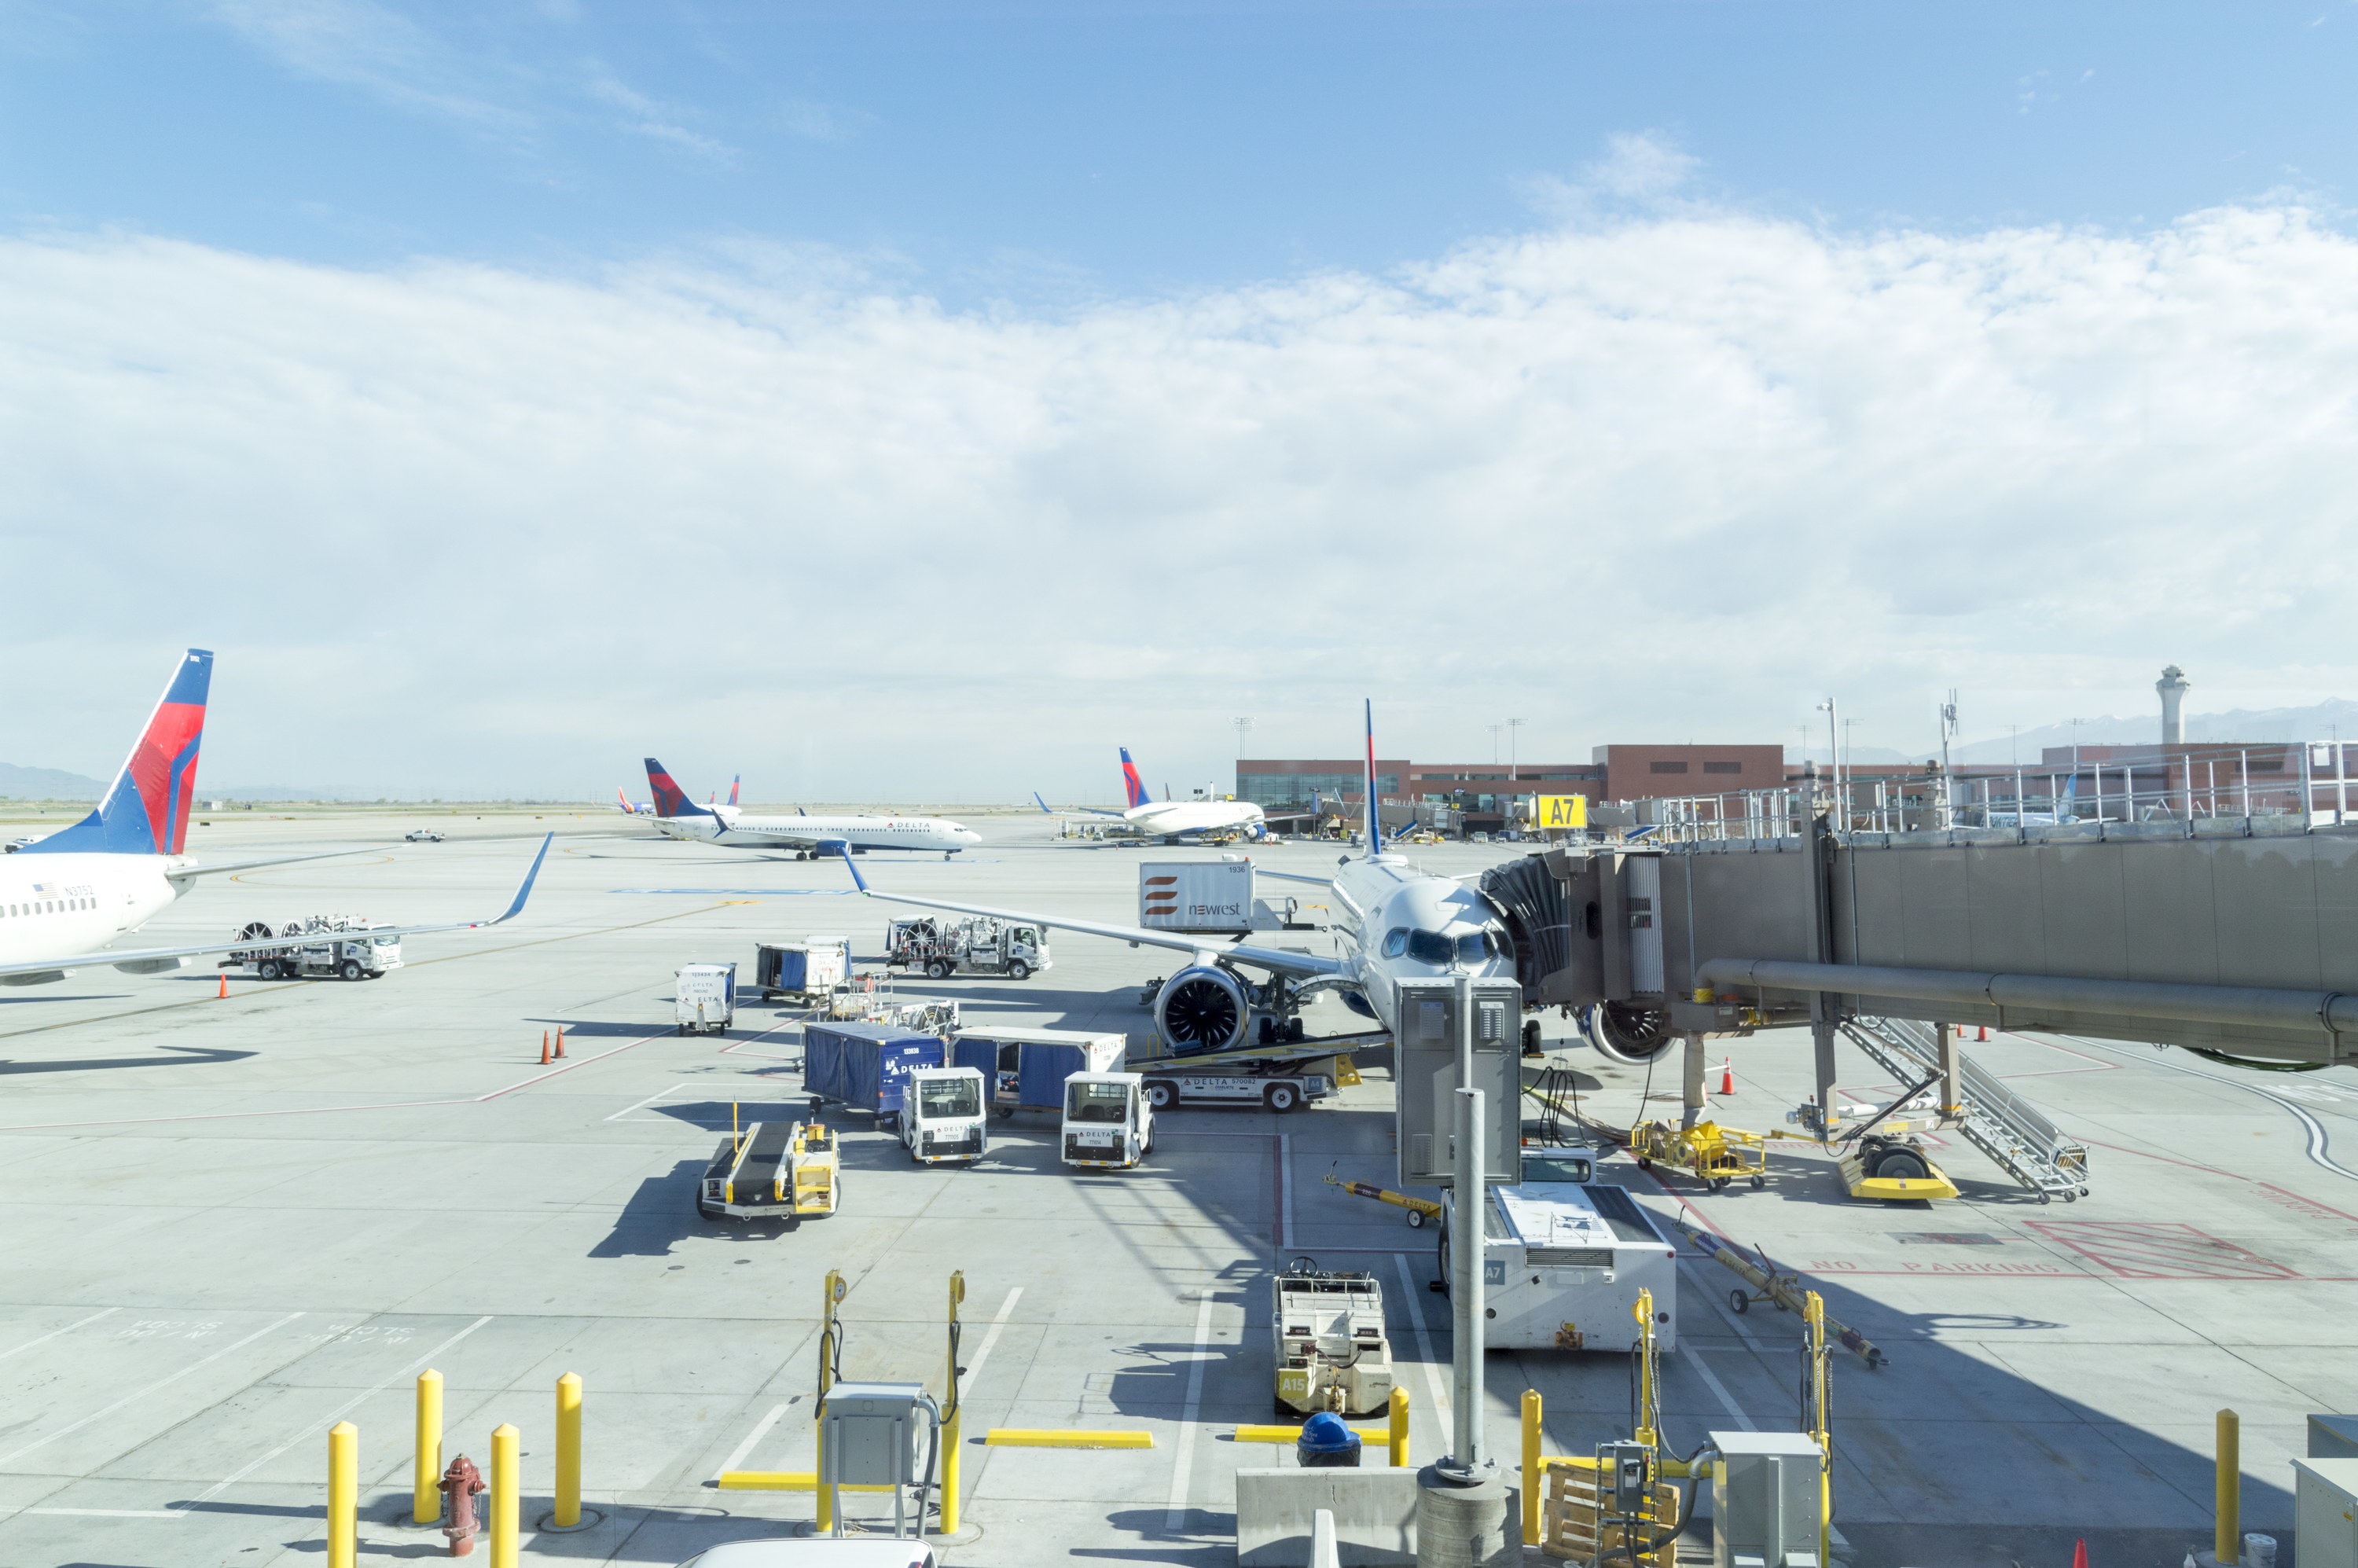 Planes parked at the airport